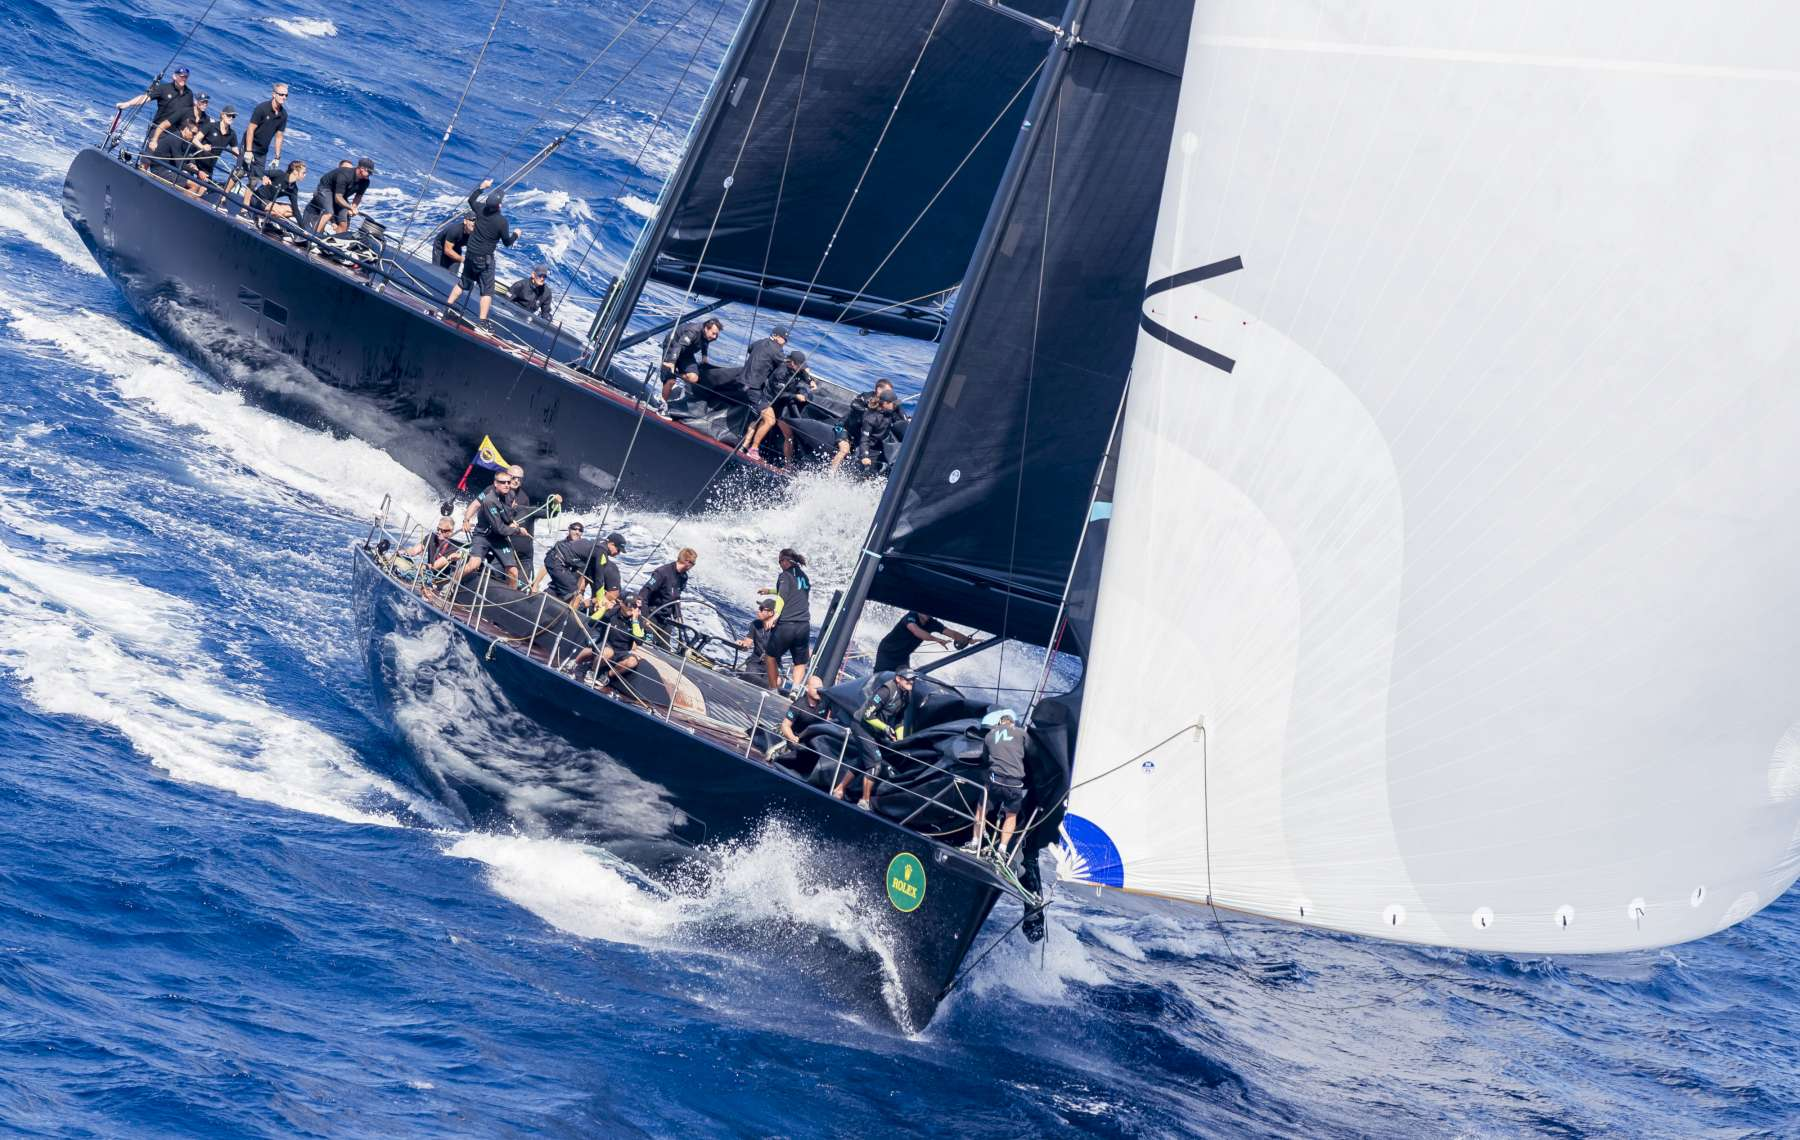 Notice of Race for Maxi Yacht Rolex Cup 2018 now online - NEWS - Yacht Club Costa Smeralda